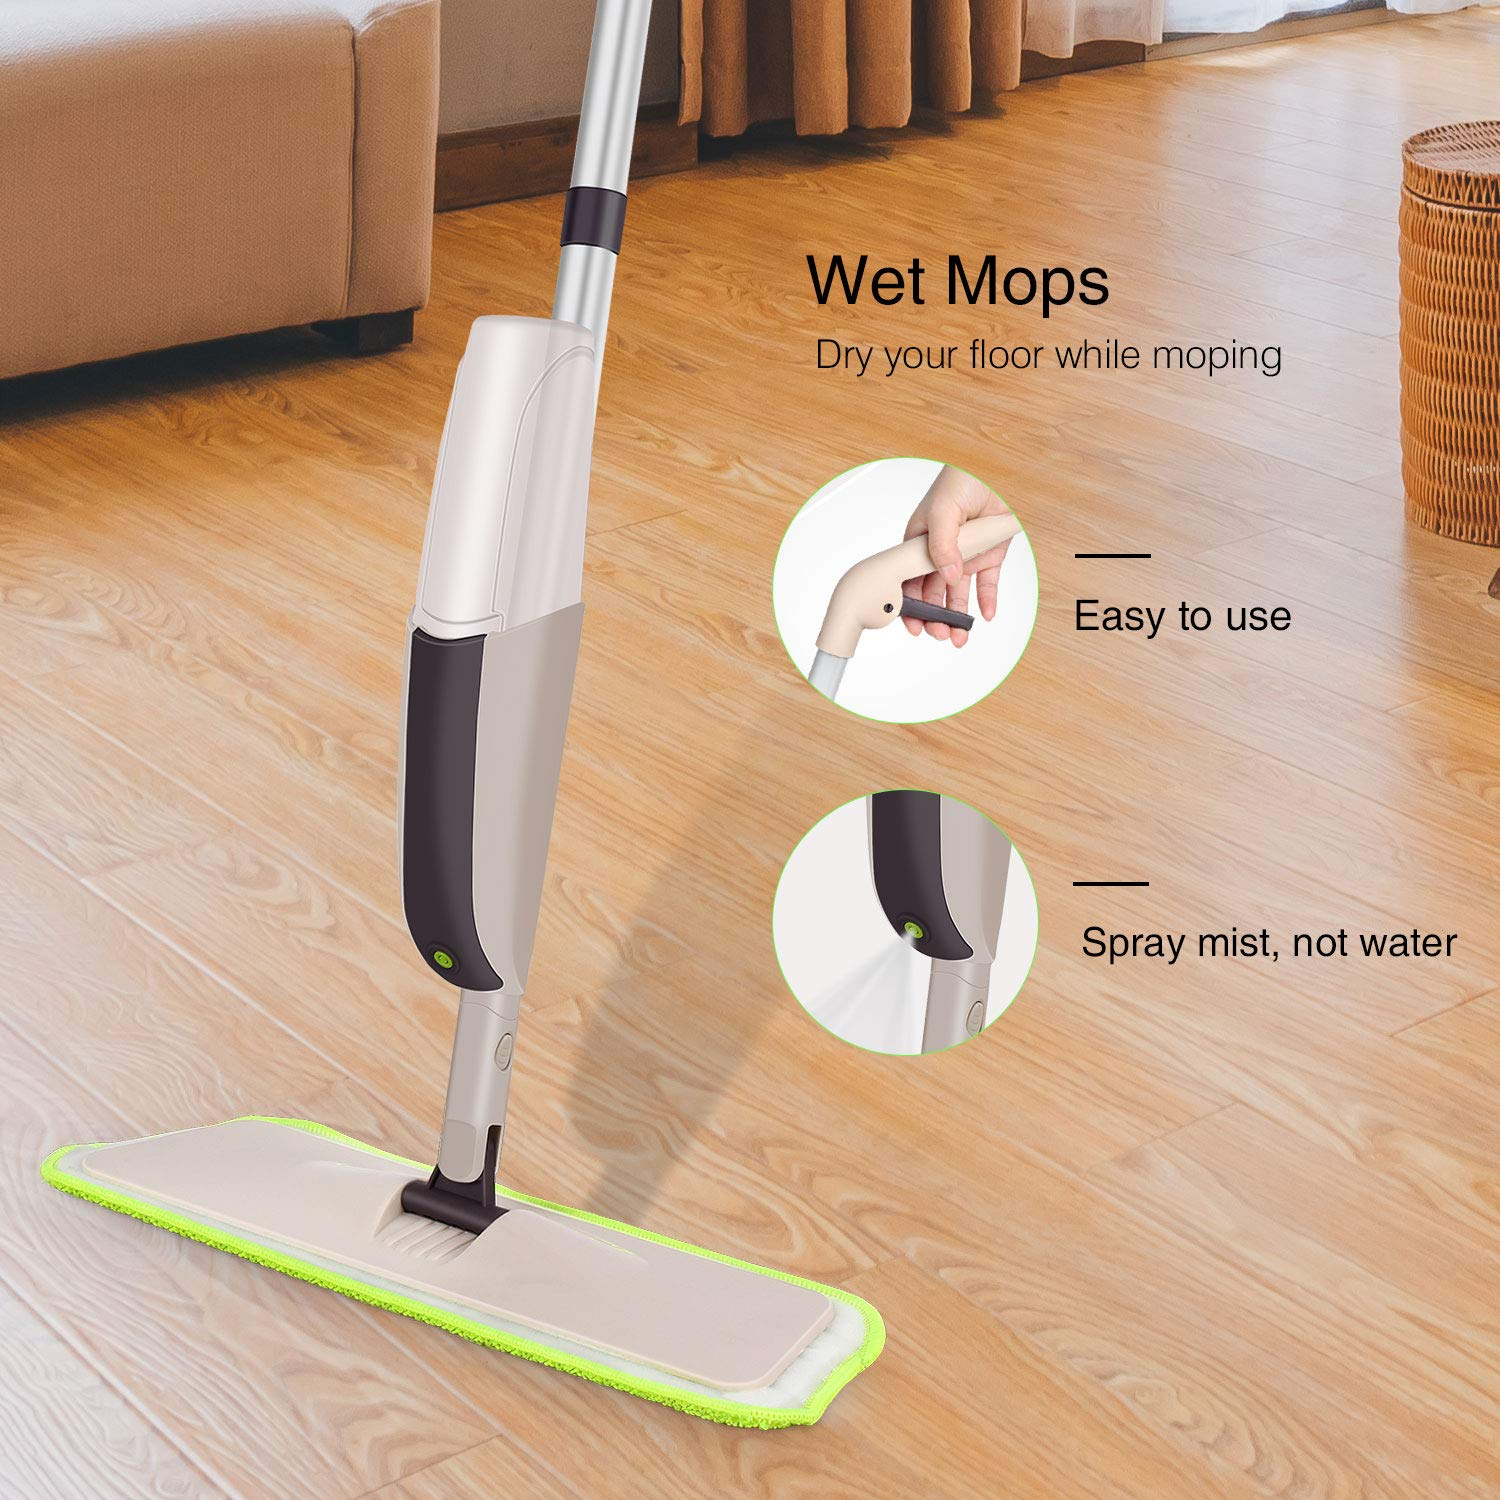 Hardwood Spray Mop for Floor Cleaning, CXhome Microfiber Mop for Tile Floors, Wet Dry Mop with Sprayer and 2 Mop Pads, 1 Refillable Bottle by CXhome (Image #3)